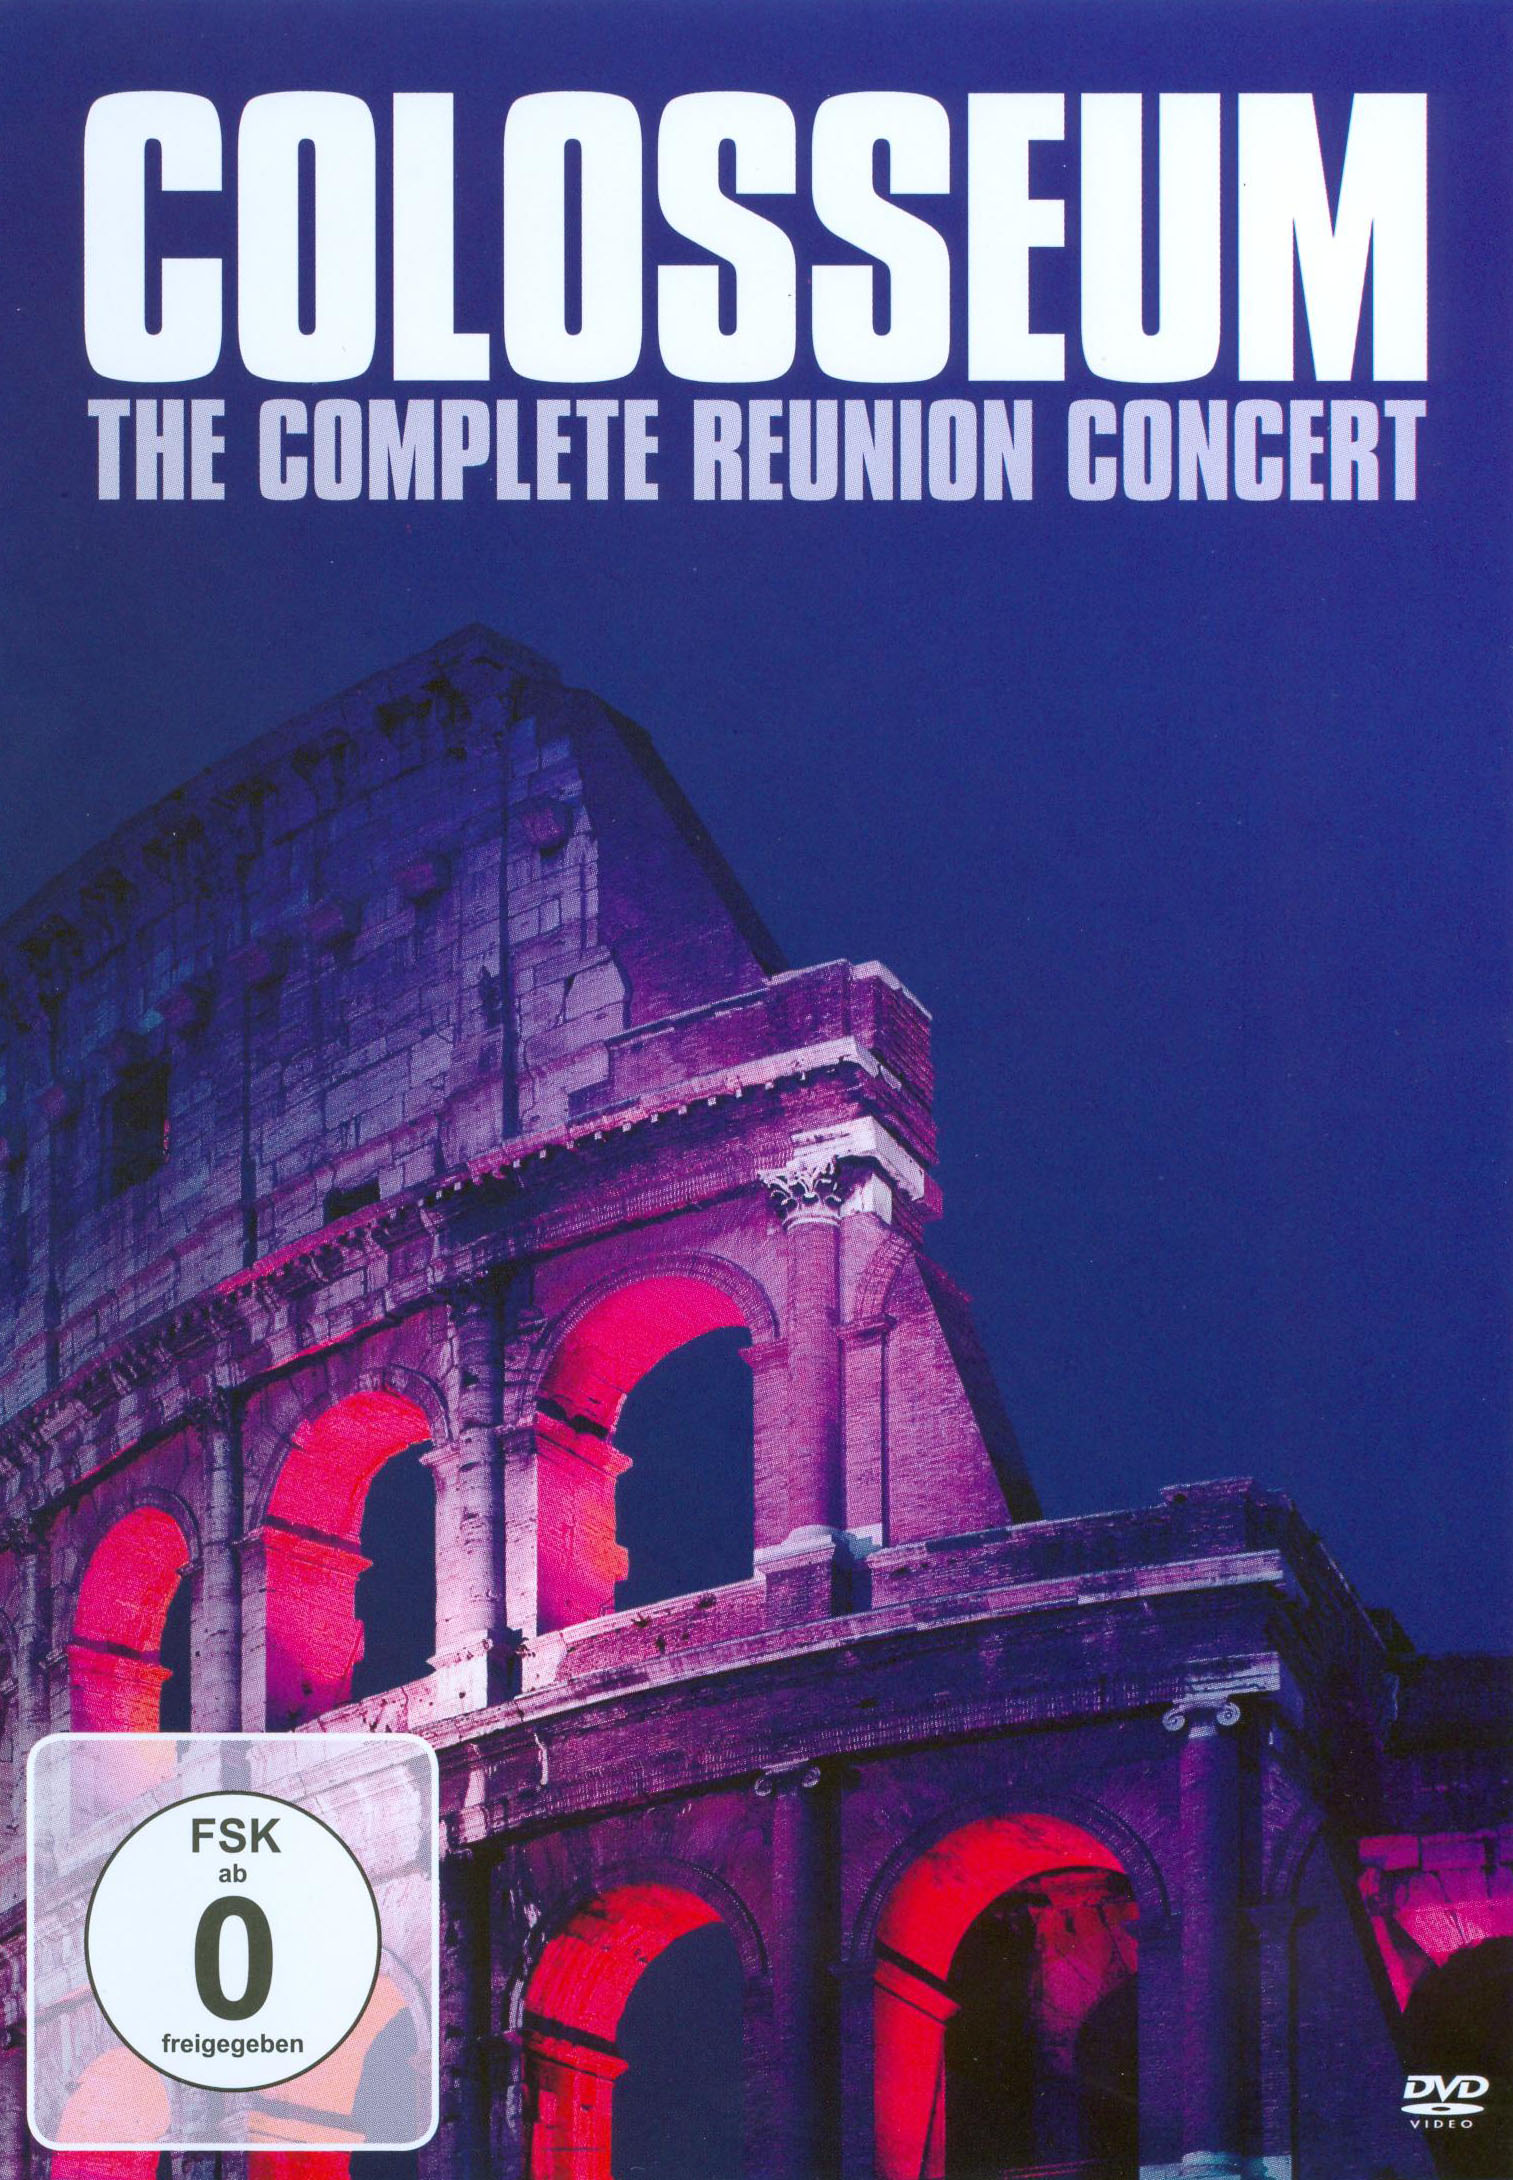 Colosseum: The Complete Reunion Concert - Cologne 1994